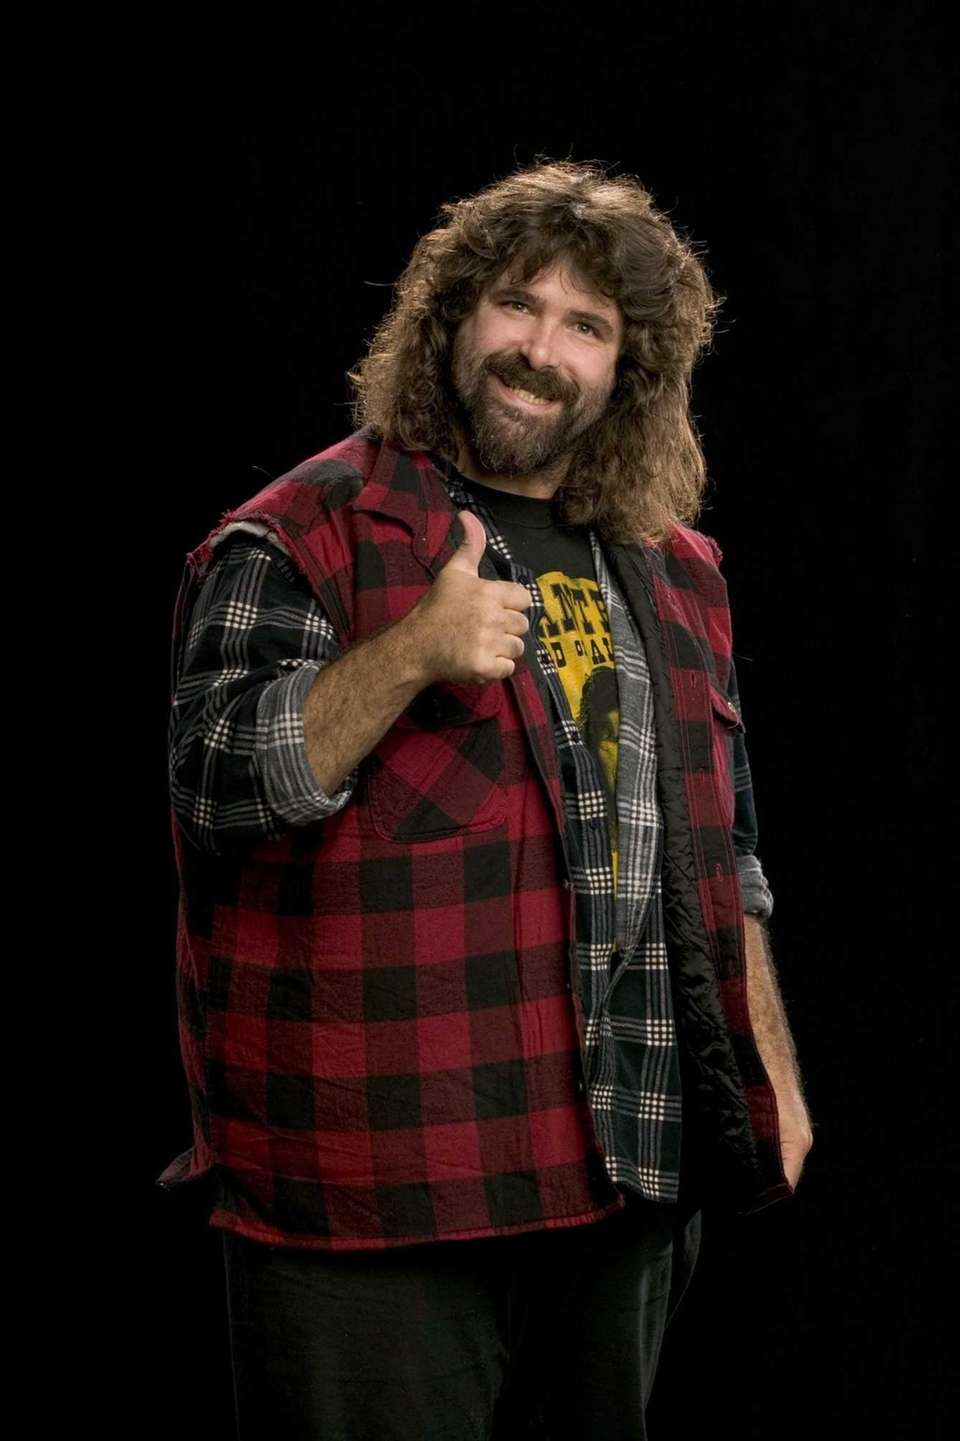 WWE champ Mick Foley grew up in East